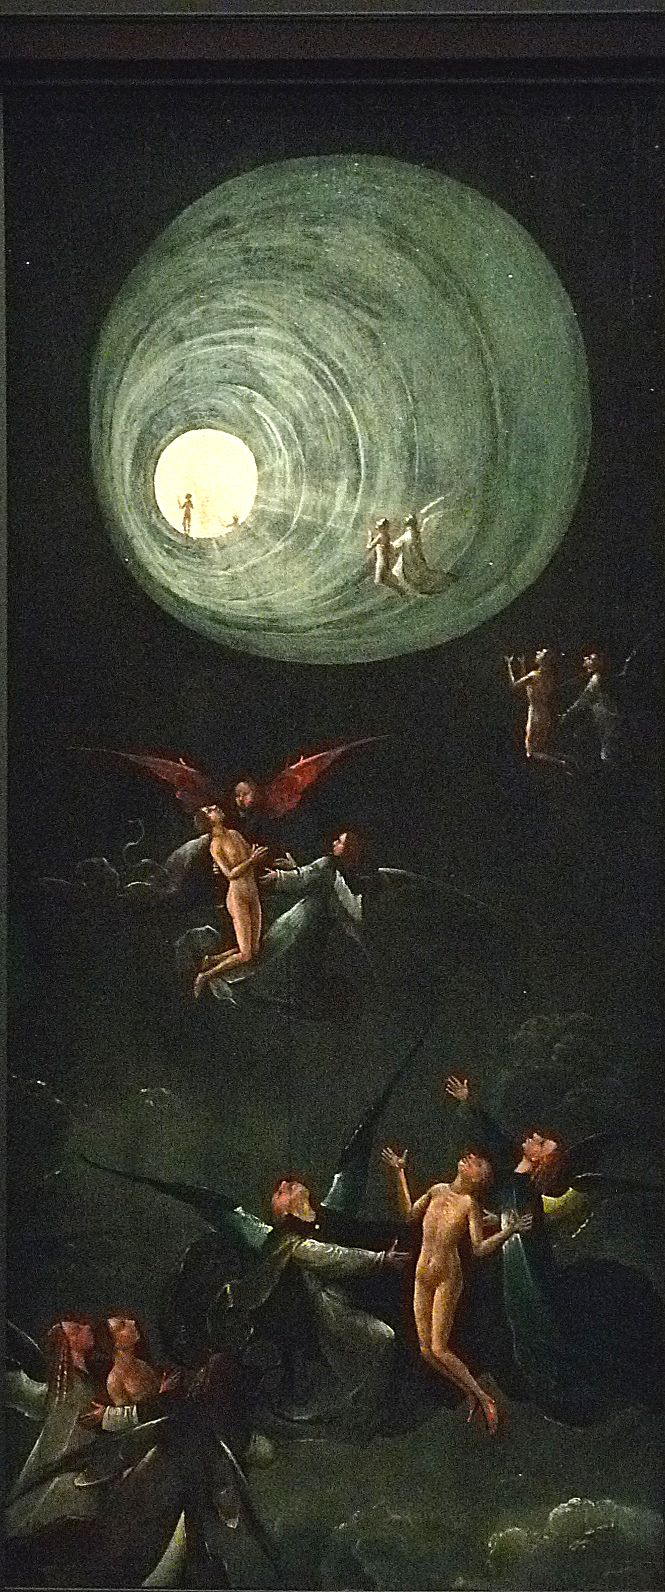 "BOSCH Jérôme,1505-10 - Vision de l'Au-Delà, La Montée des Bienheureux (Venise) - 0  -  TAGS/details détail détails ""paintings 15e"" ""15h-century paintings"" ""peinture hollandaise"" ""Dutch paintings"" ""peintres hollandais"" ""Dutch painters Venice Veneziana Museum Italie Italia Italy Hieronymus monstres monster monsters ""Jugement Dernier"" ""Last Judgment"" Bible fire battle femme woman women man men hommes people bare naked nu Paradise Hell couteau knife mort death ange angel angels"